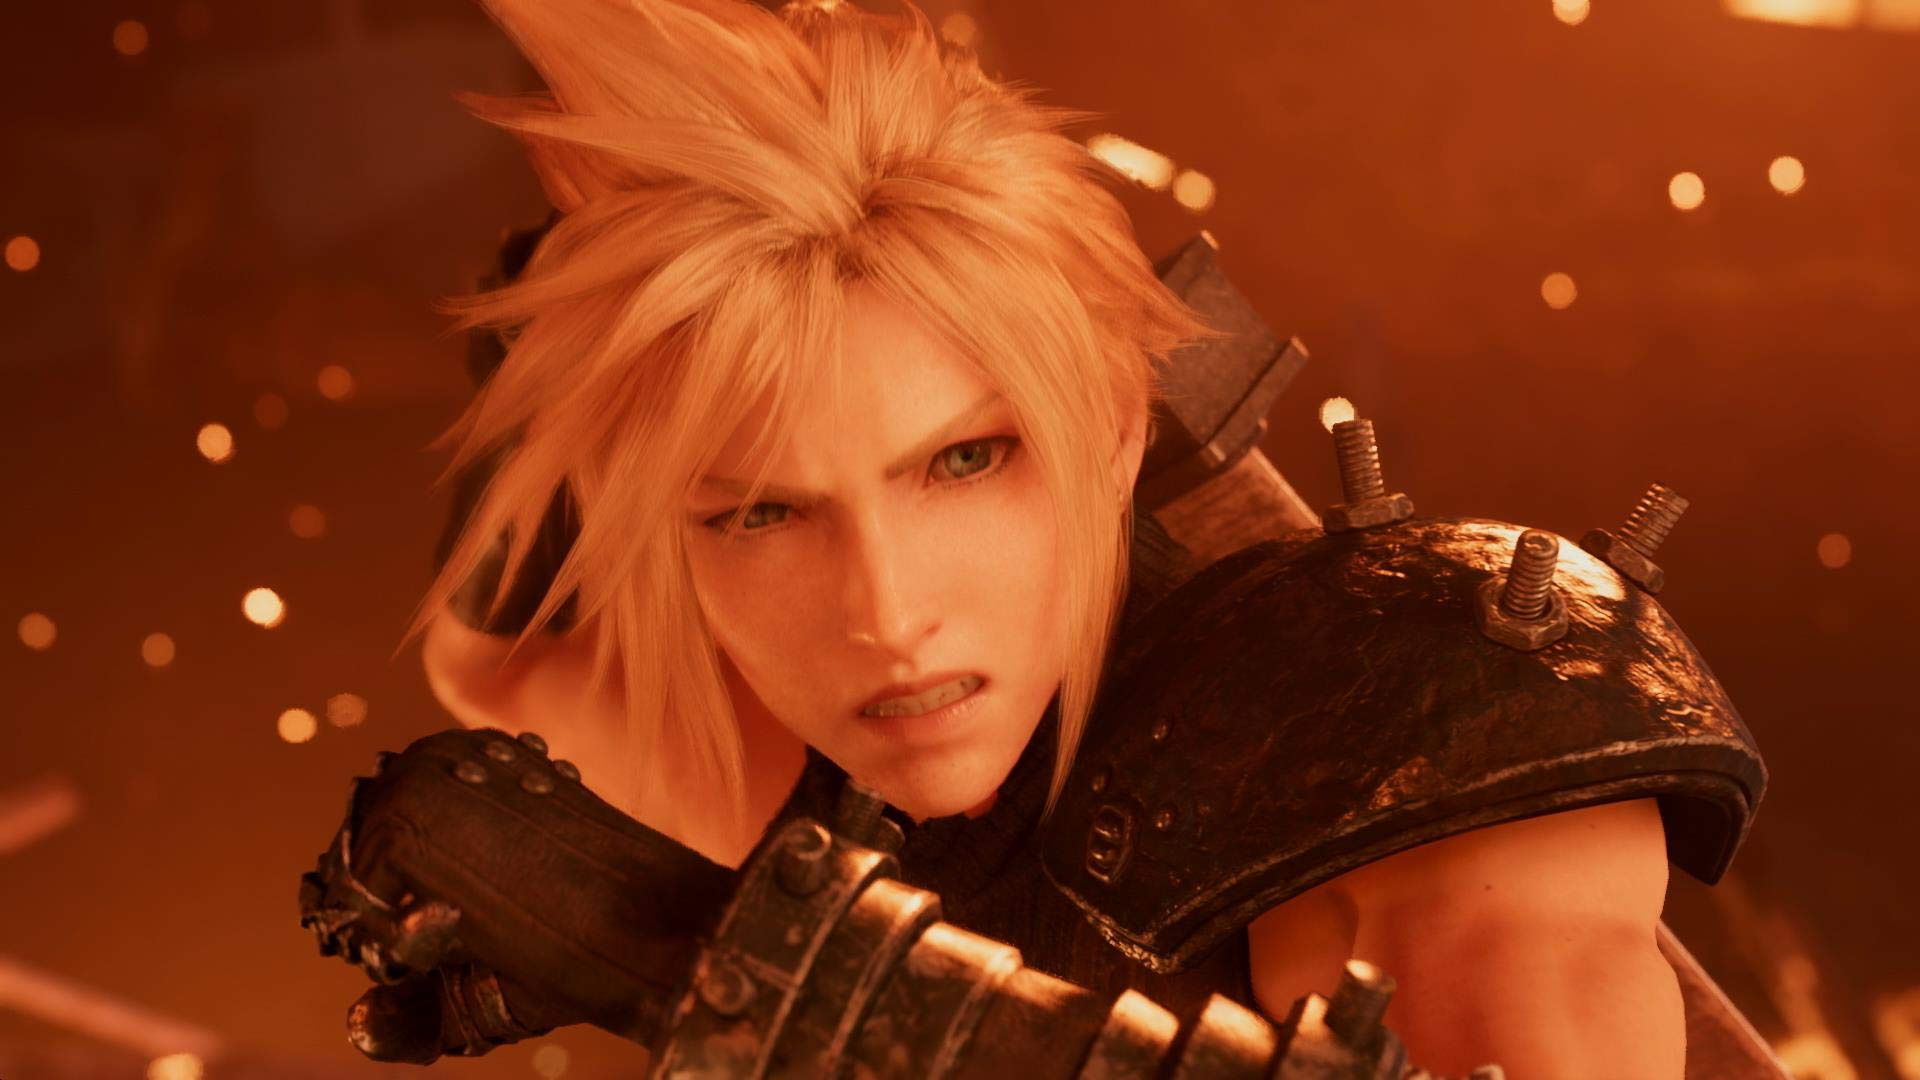 Final Fantasy VII Remake - PlayStation 4 Deluxe Edition by Square Enix (Image #8)